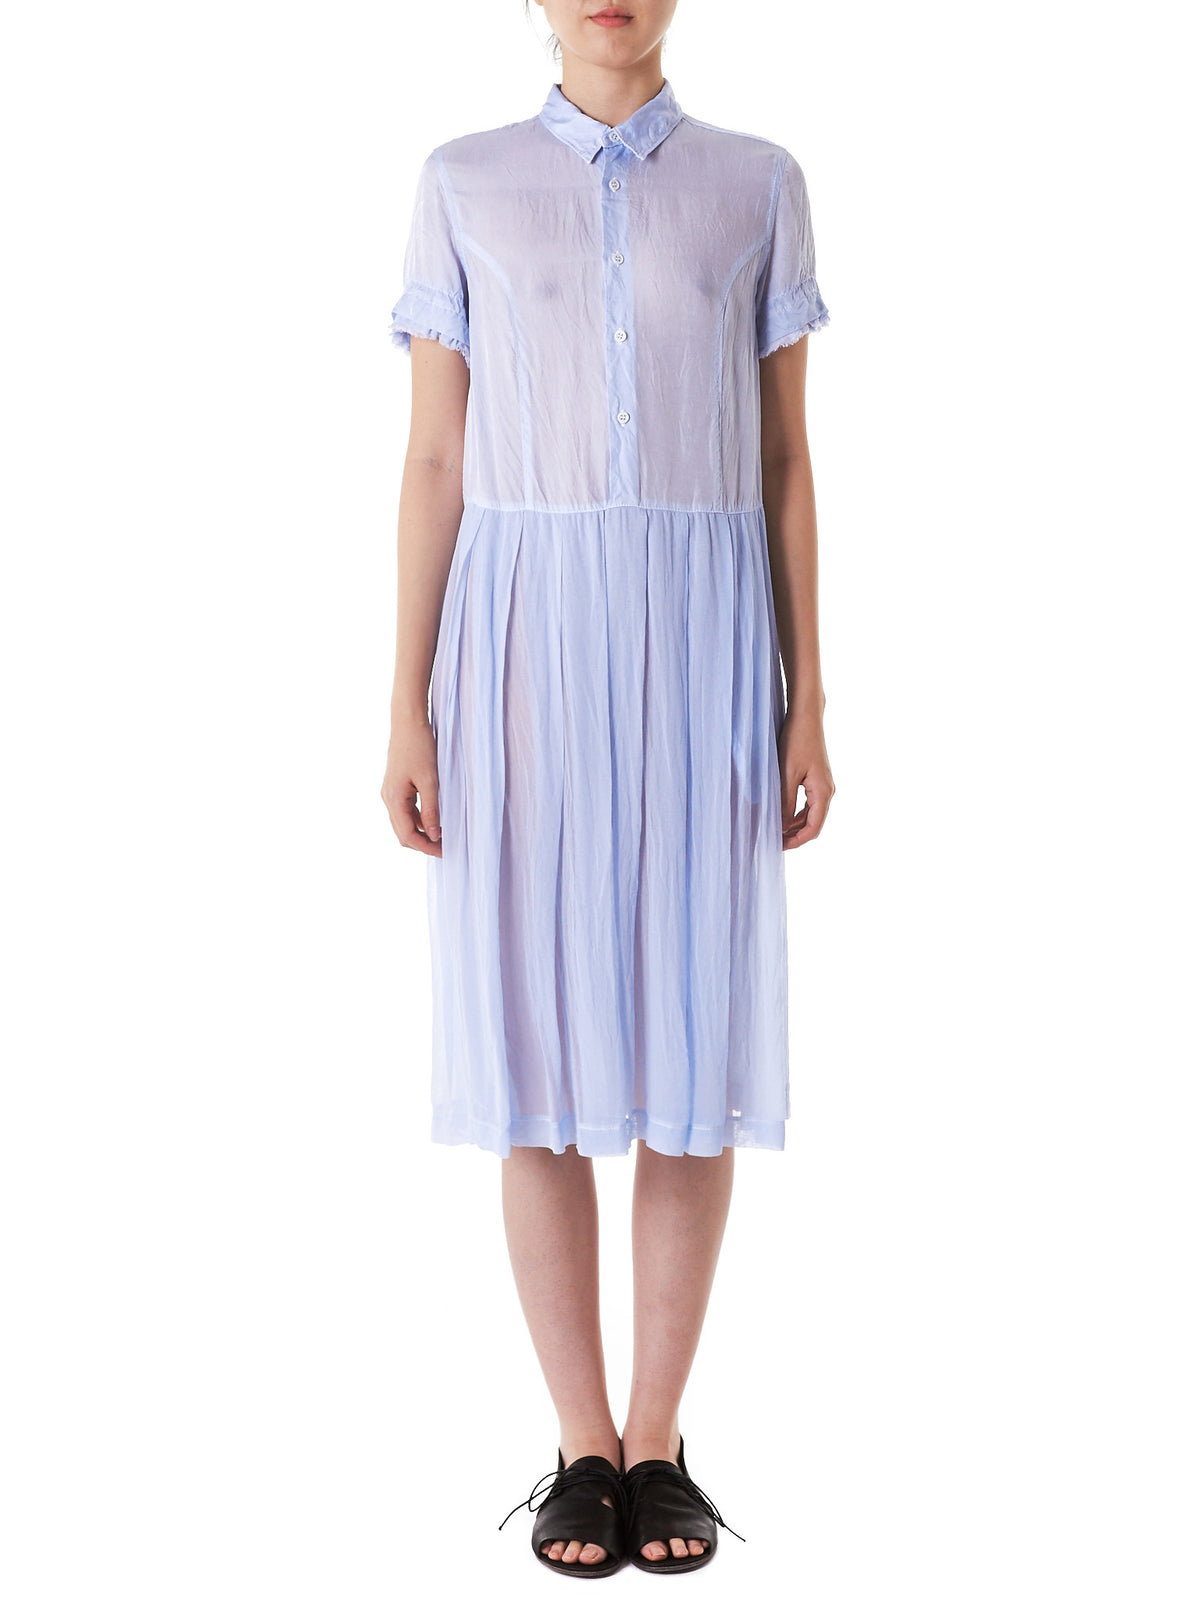 Pleated Button-Down Dress (TS-O011-051-3) - H. Lorenzo